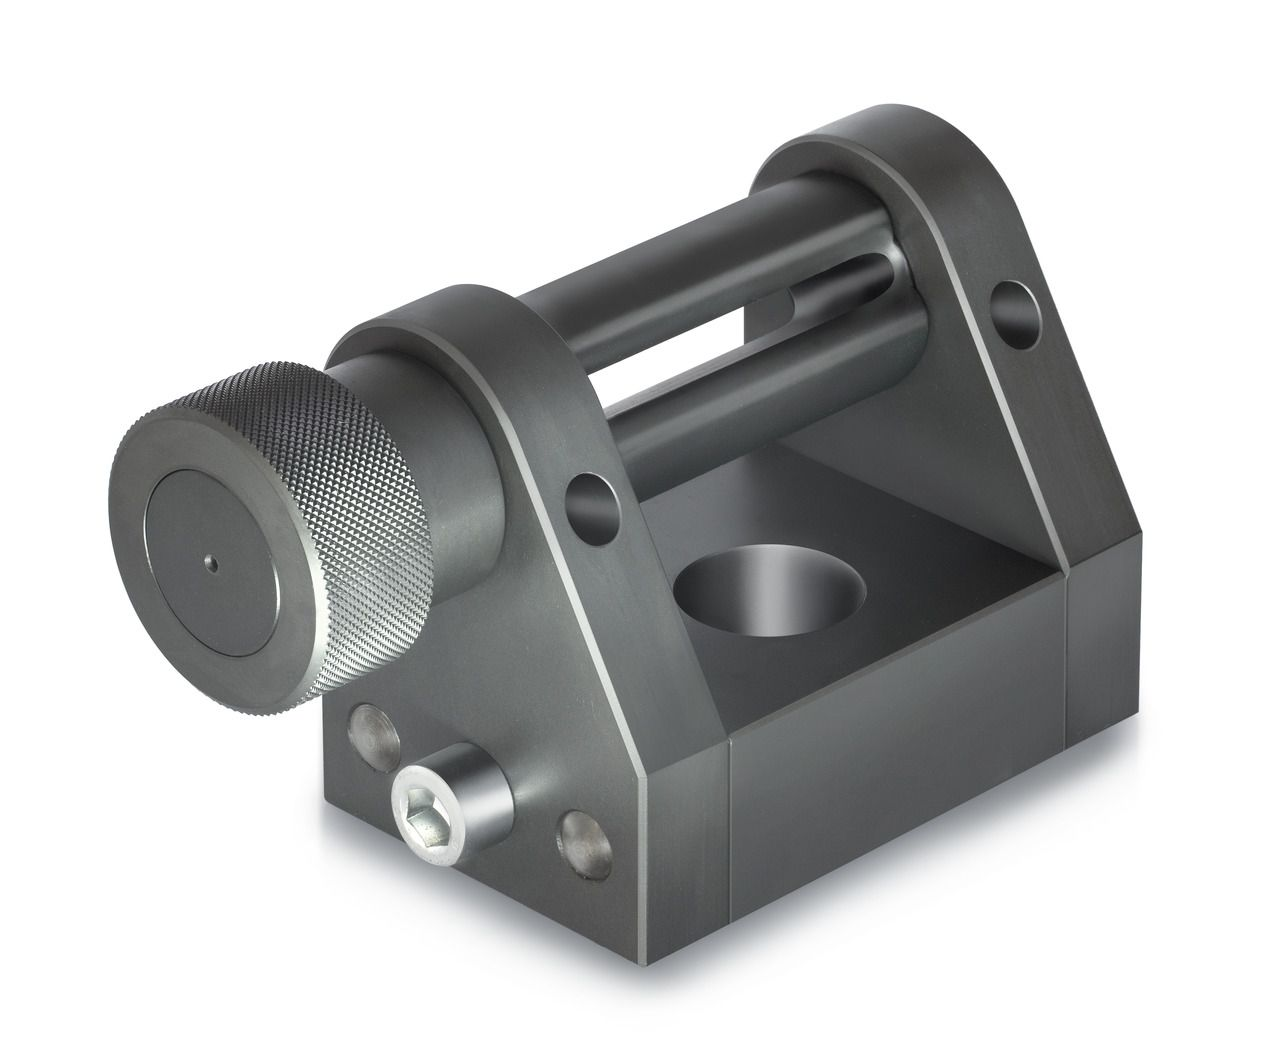 AD 9256 Belt Tension Clamp